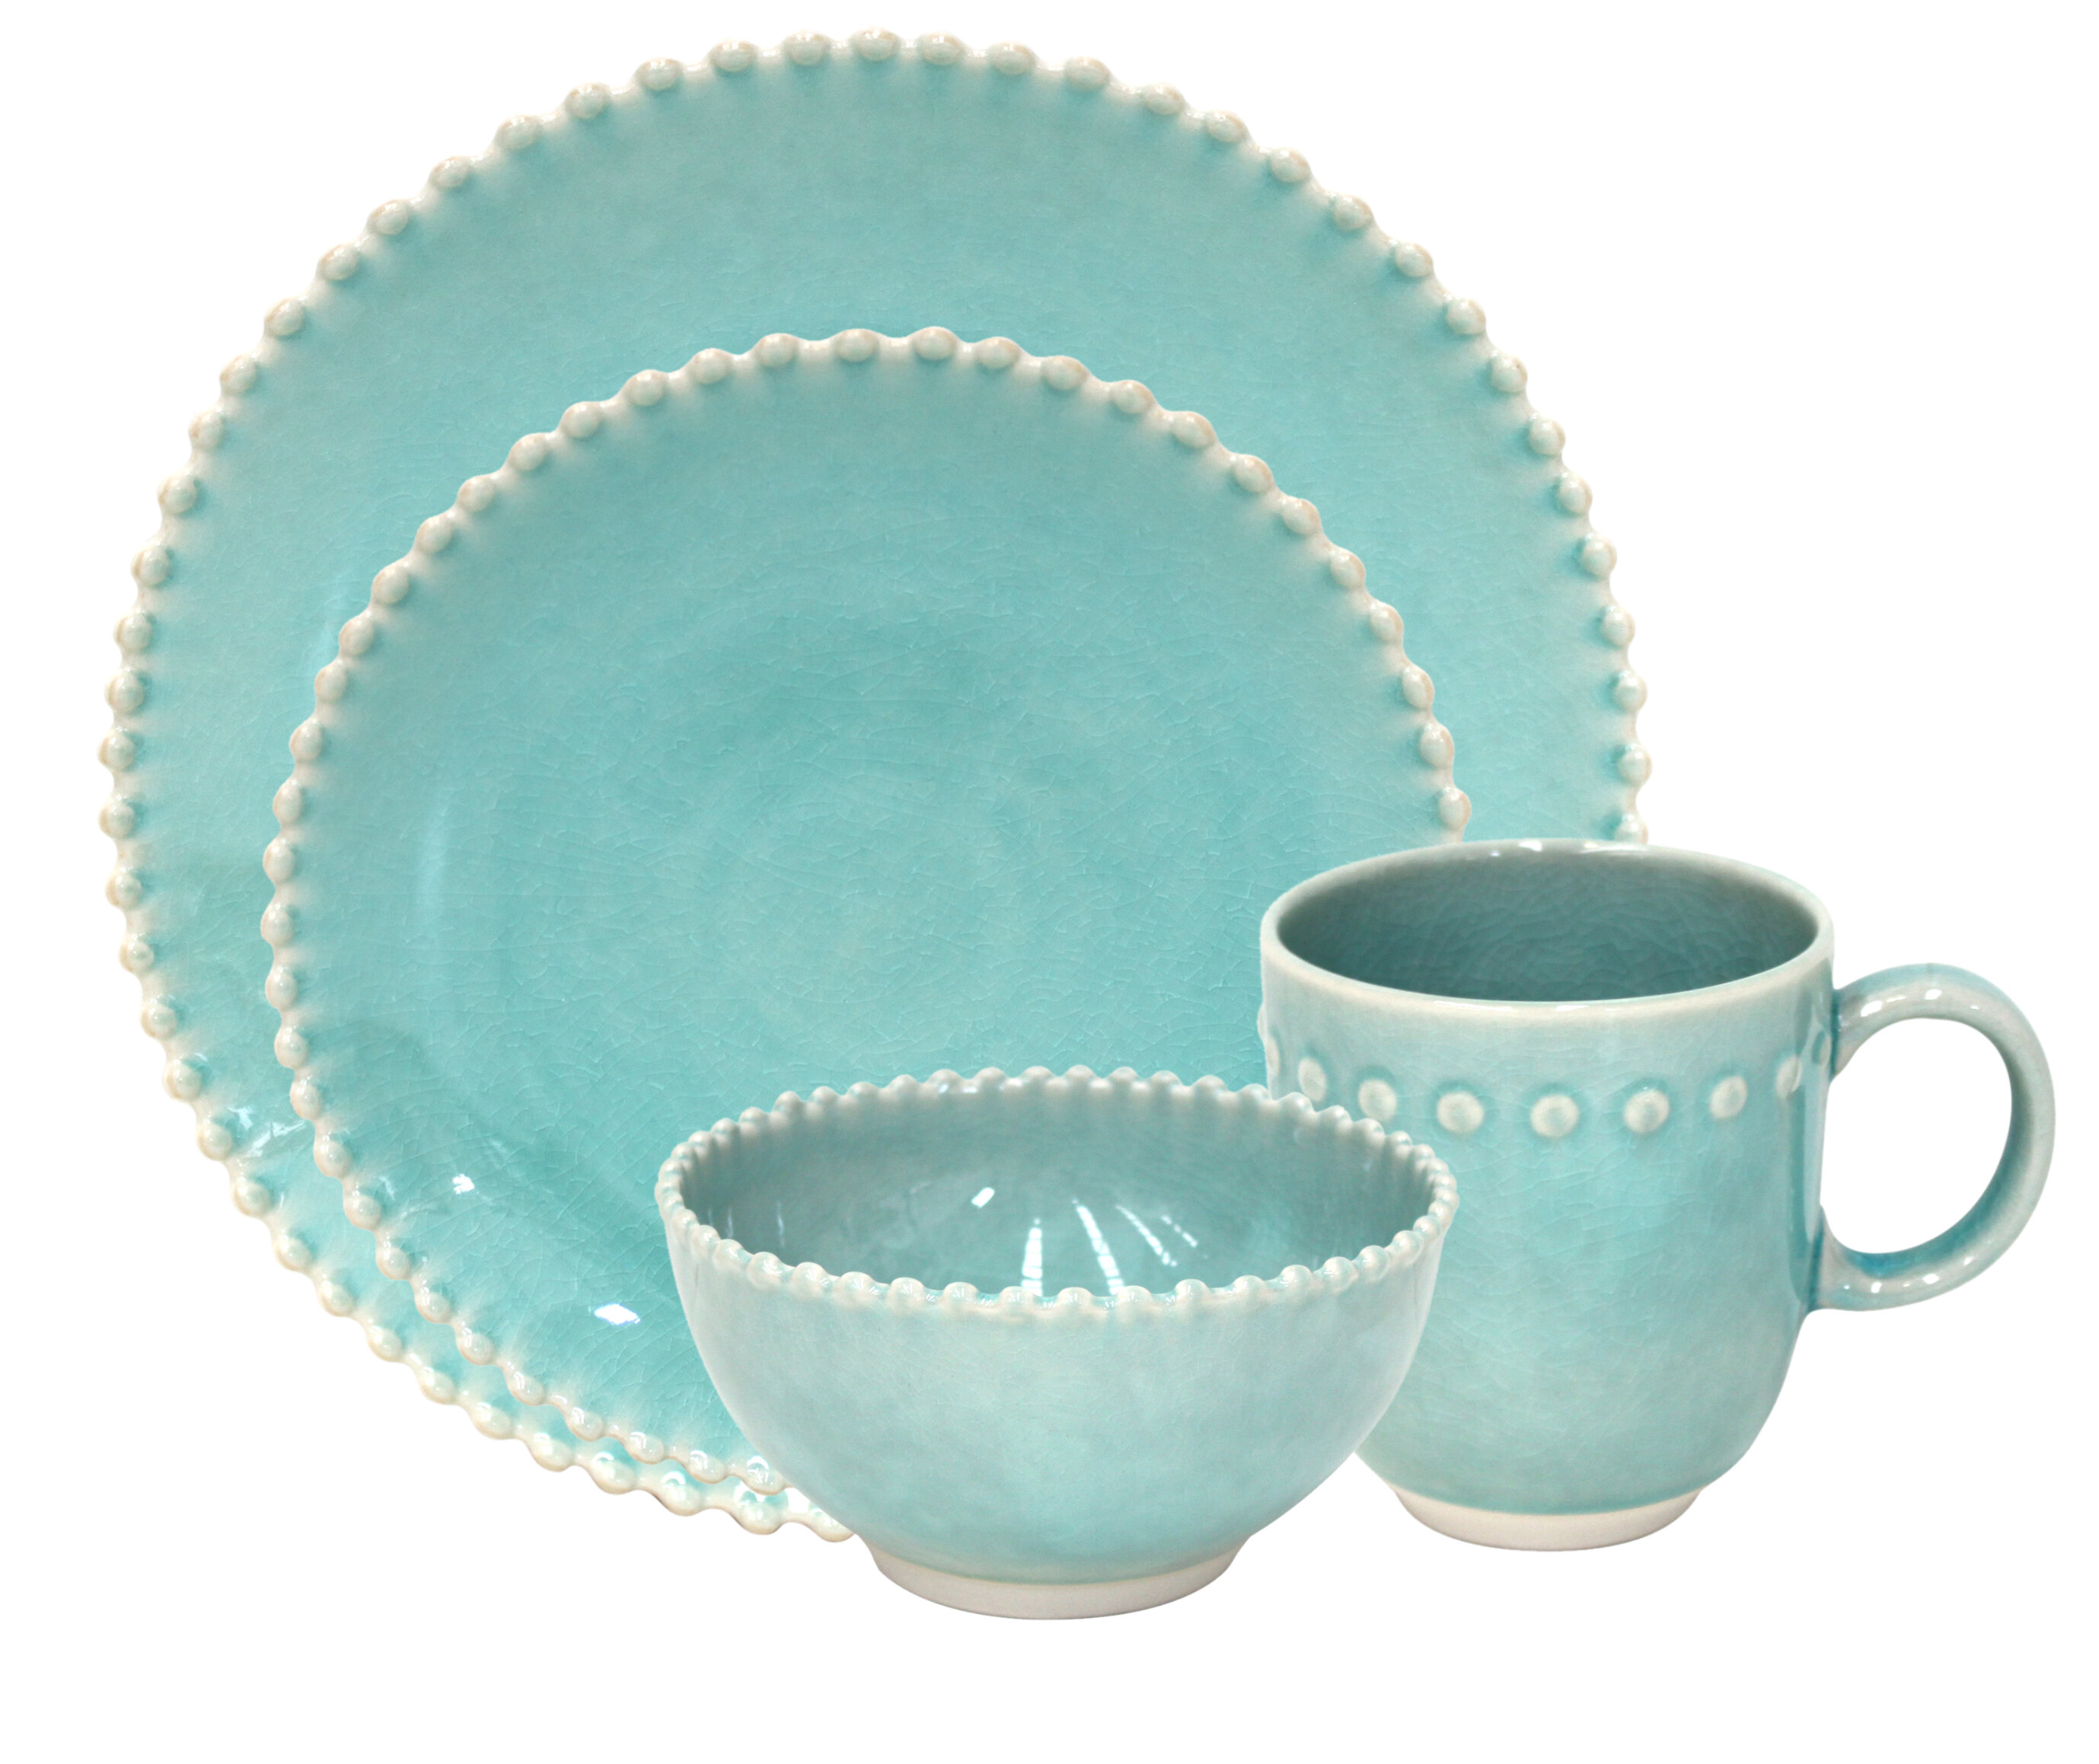 Pearl 7 Piece Place Setting Set, Service for 7